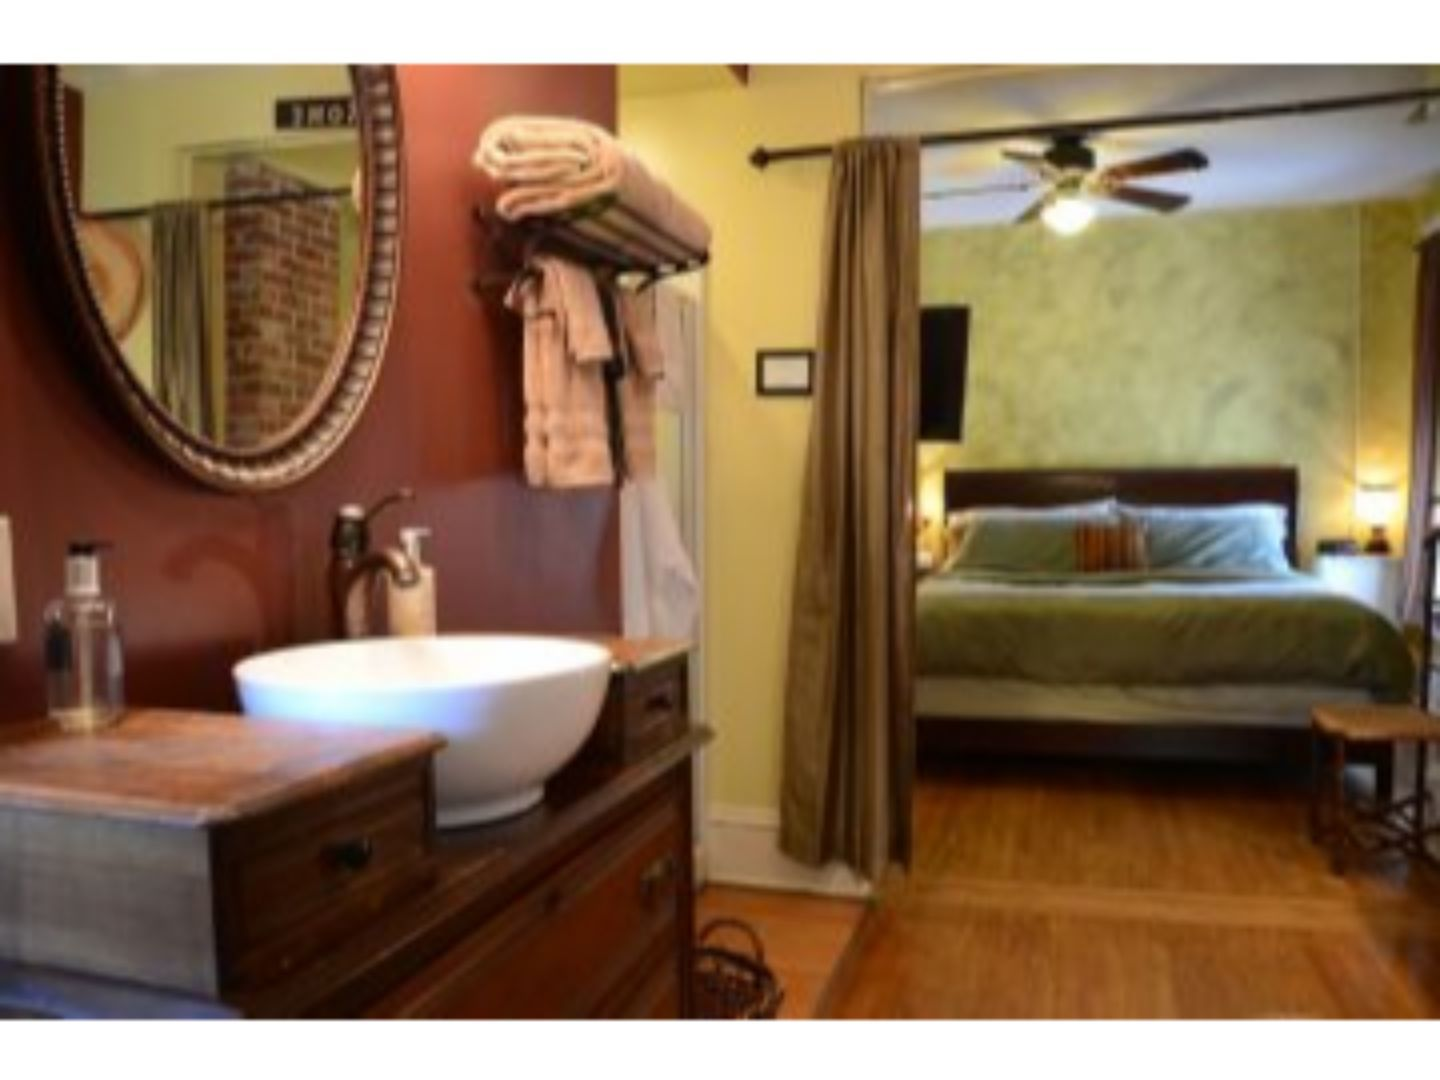 A bedroom with a large mirror at Whispering Pines Bed & Breakfast.